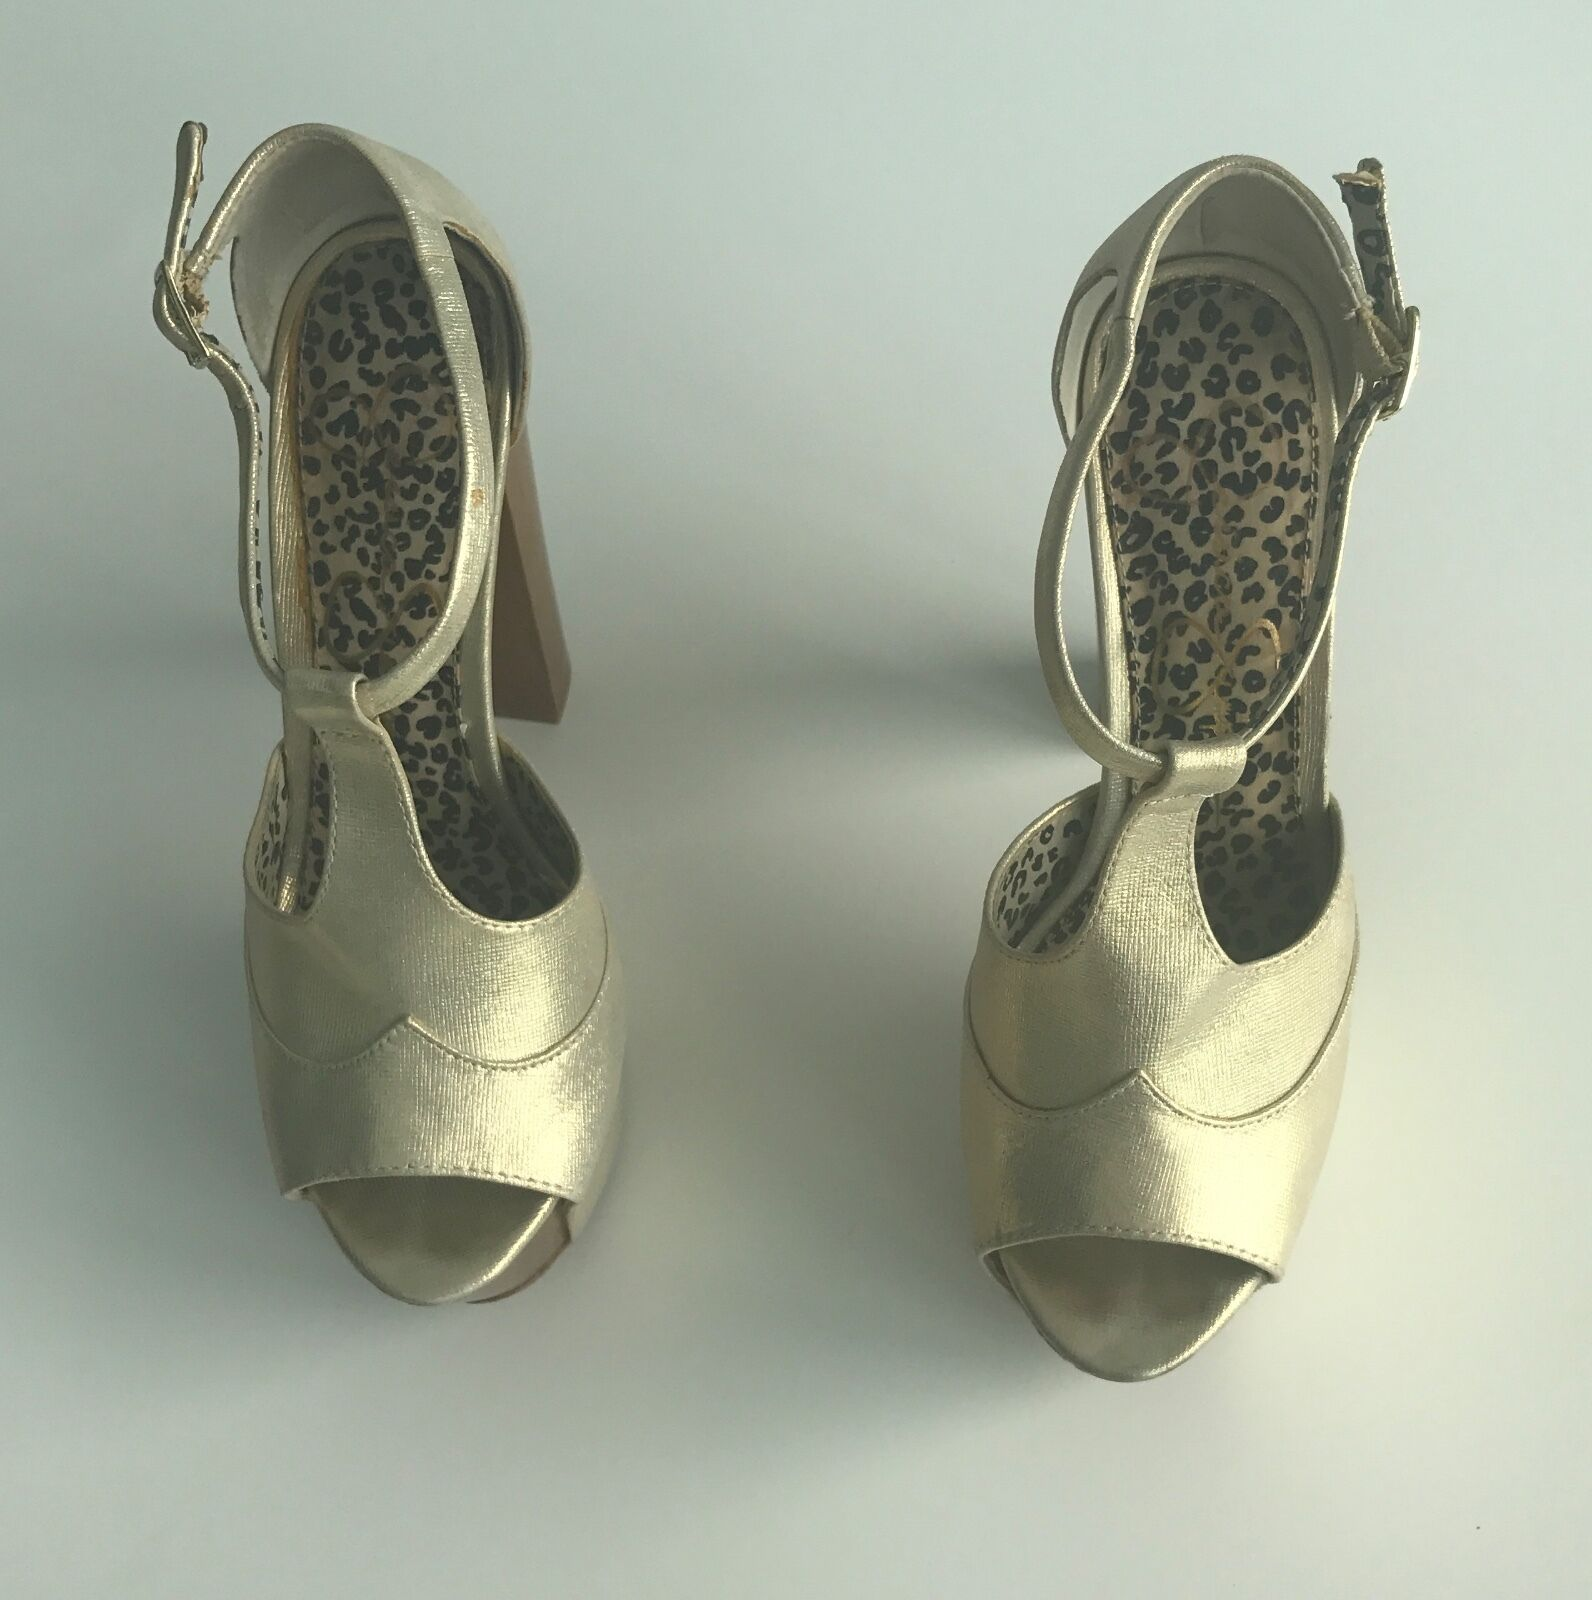 Jessica Simpson Dany Dany Simpson Slate Deco Metallic Heel Shoes For Women Size 8B 4a0ad6